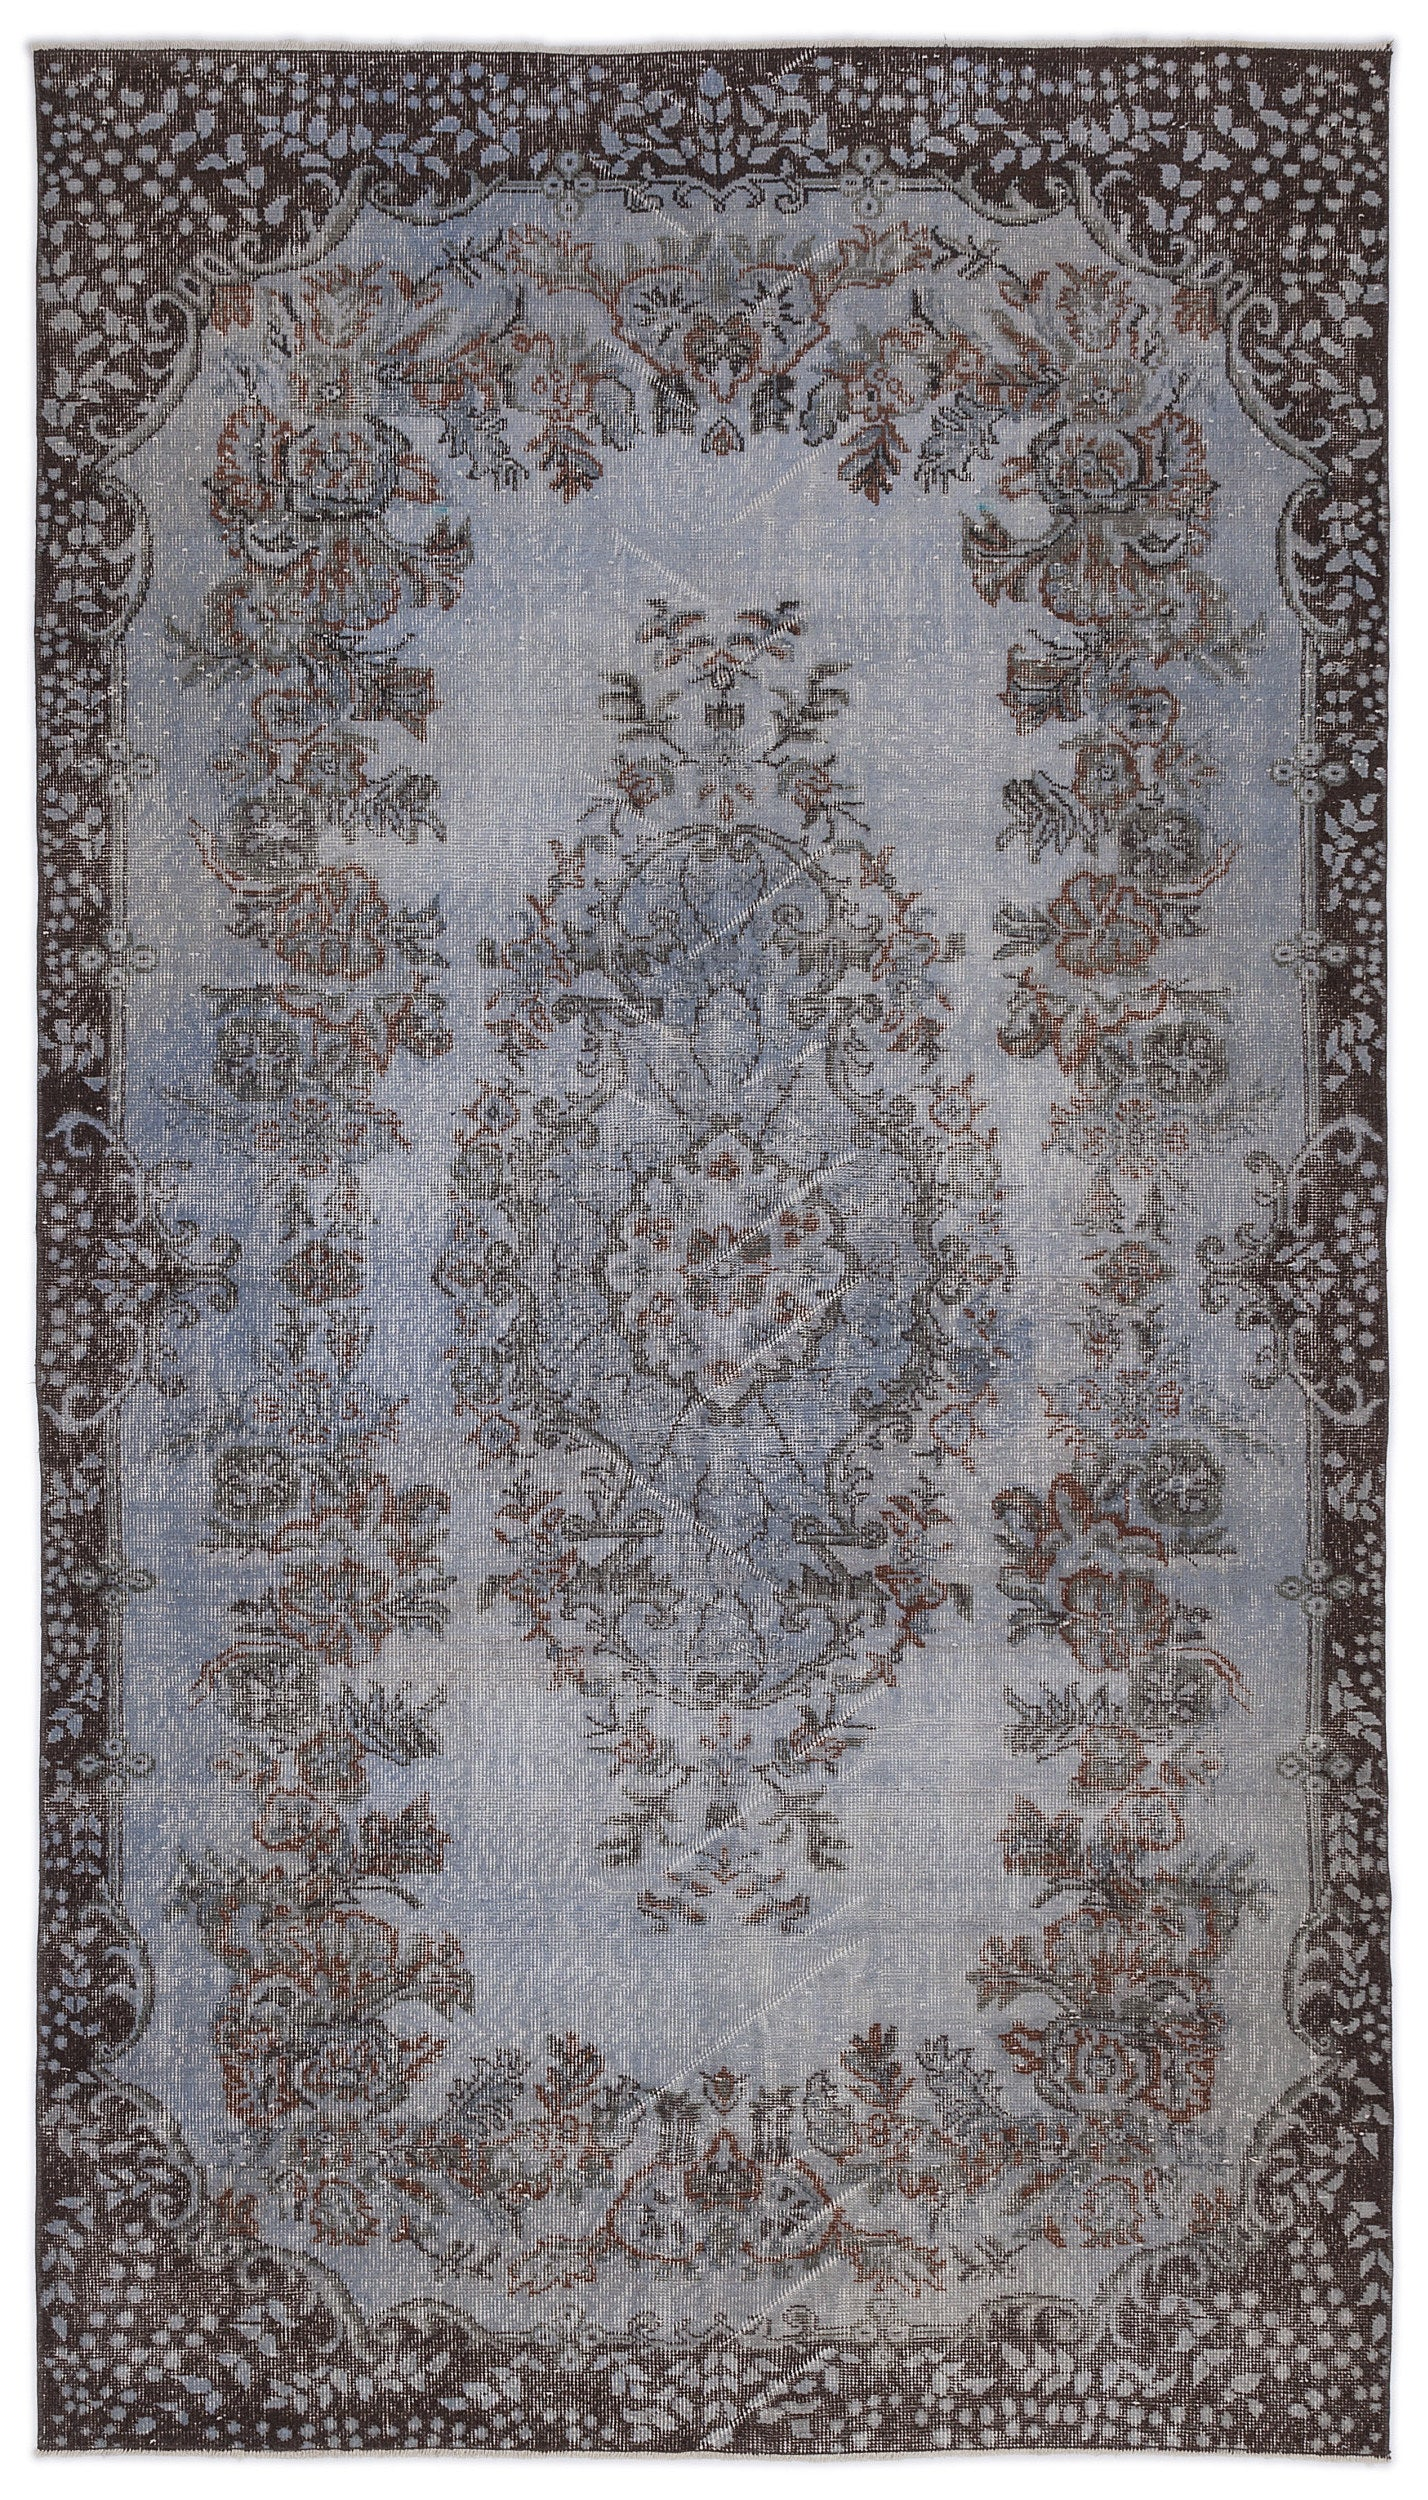 Blue Over Dyed Vintage Rug 5'7'' x 9'12'' ft 170 x 304 cm